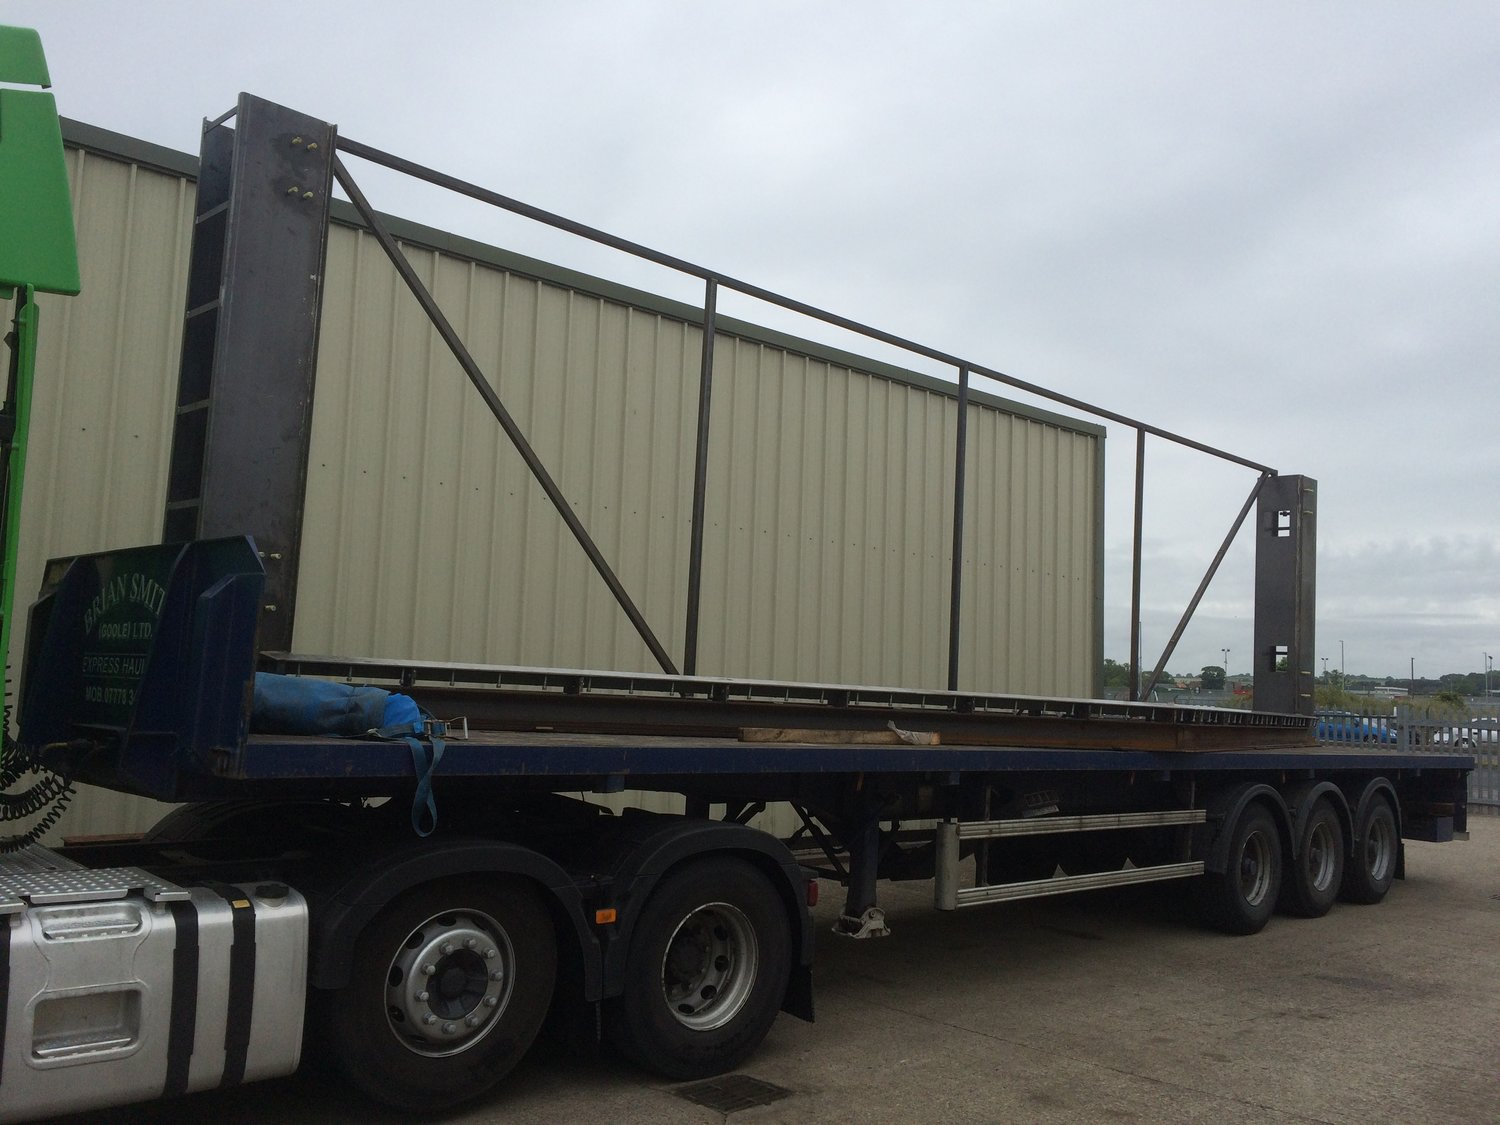 Ready for site. The 1st part of our installation  service. A lorry loaded with the frame for a  double flood gate.